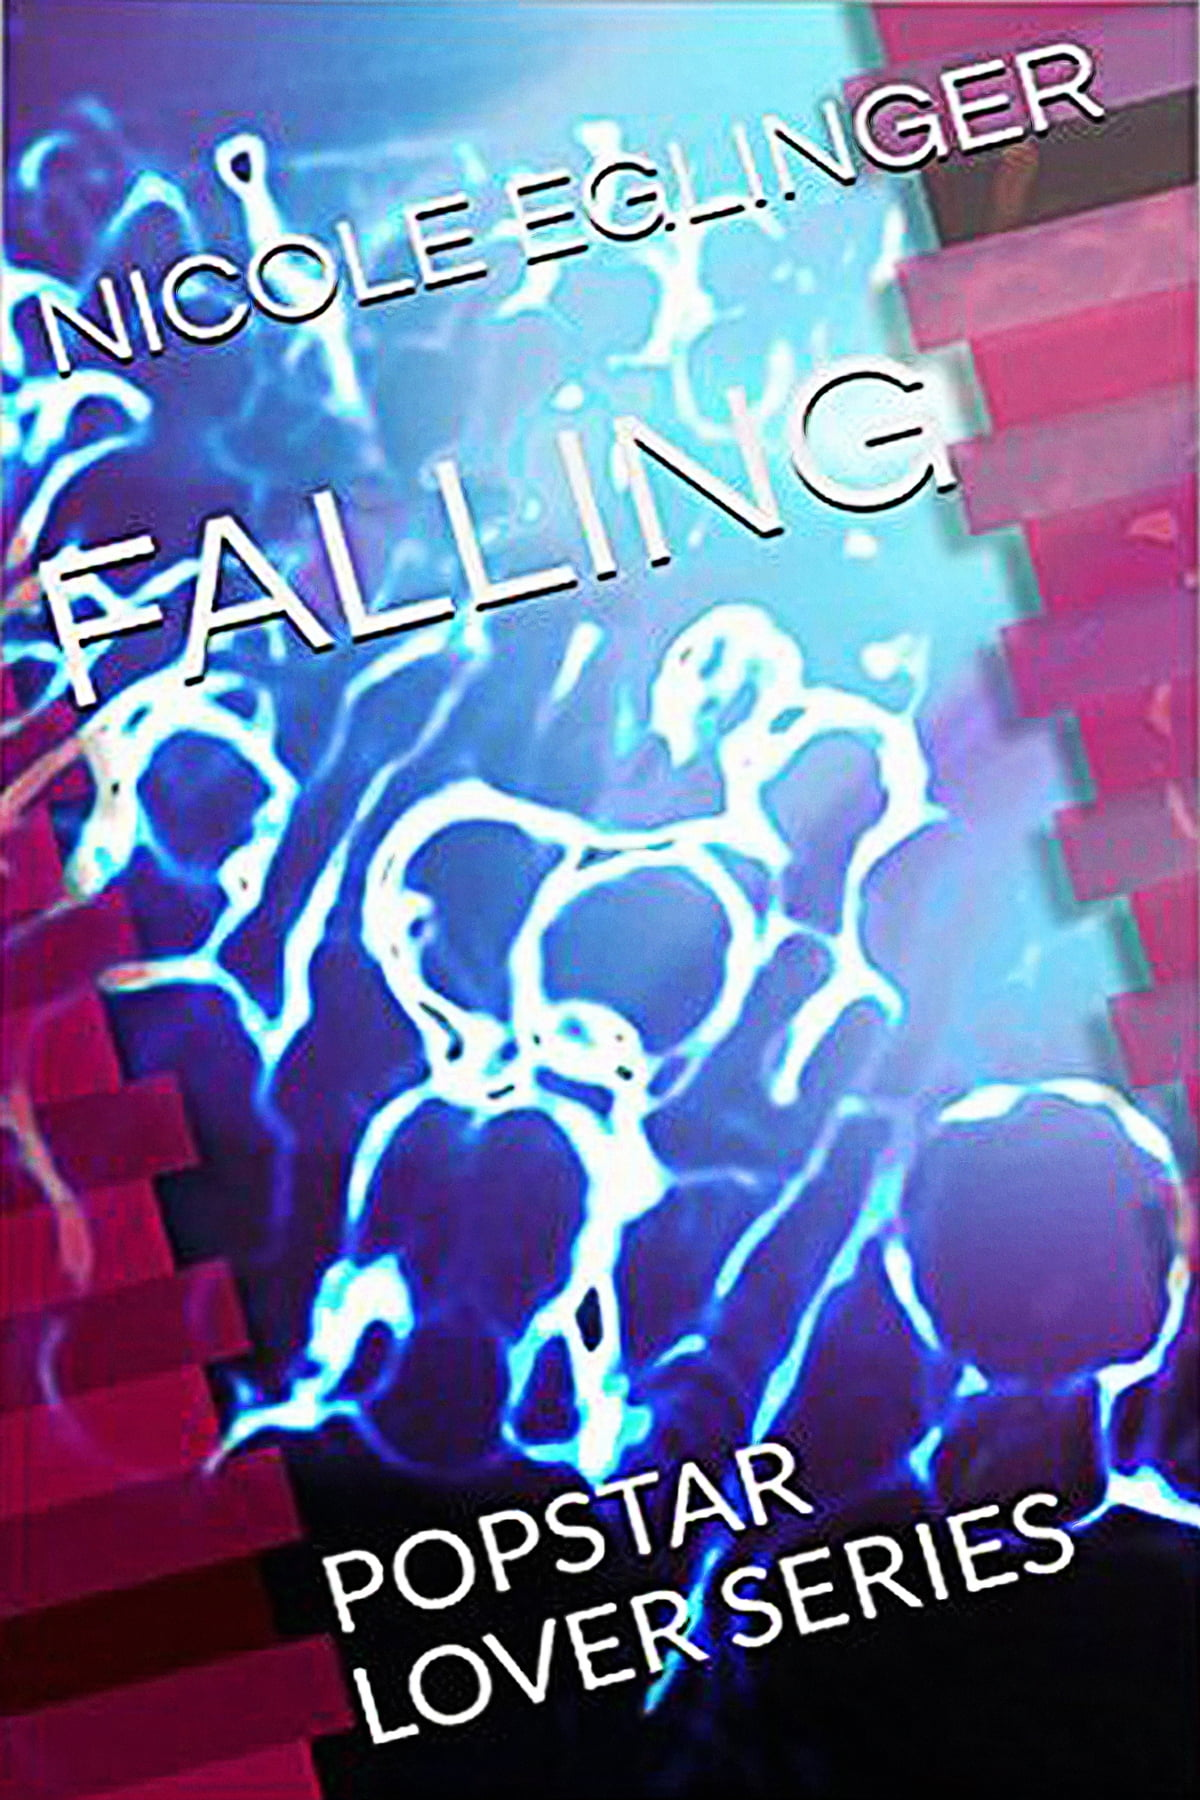 falling popstar lover series book one ebook by nicole eglinger